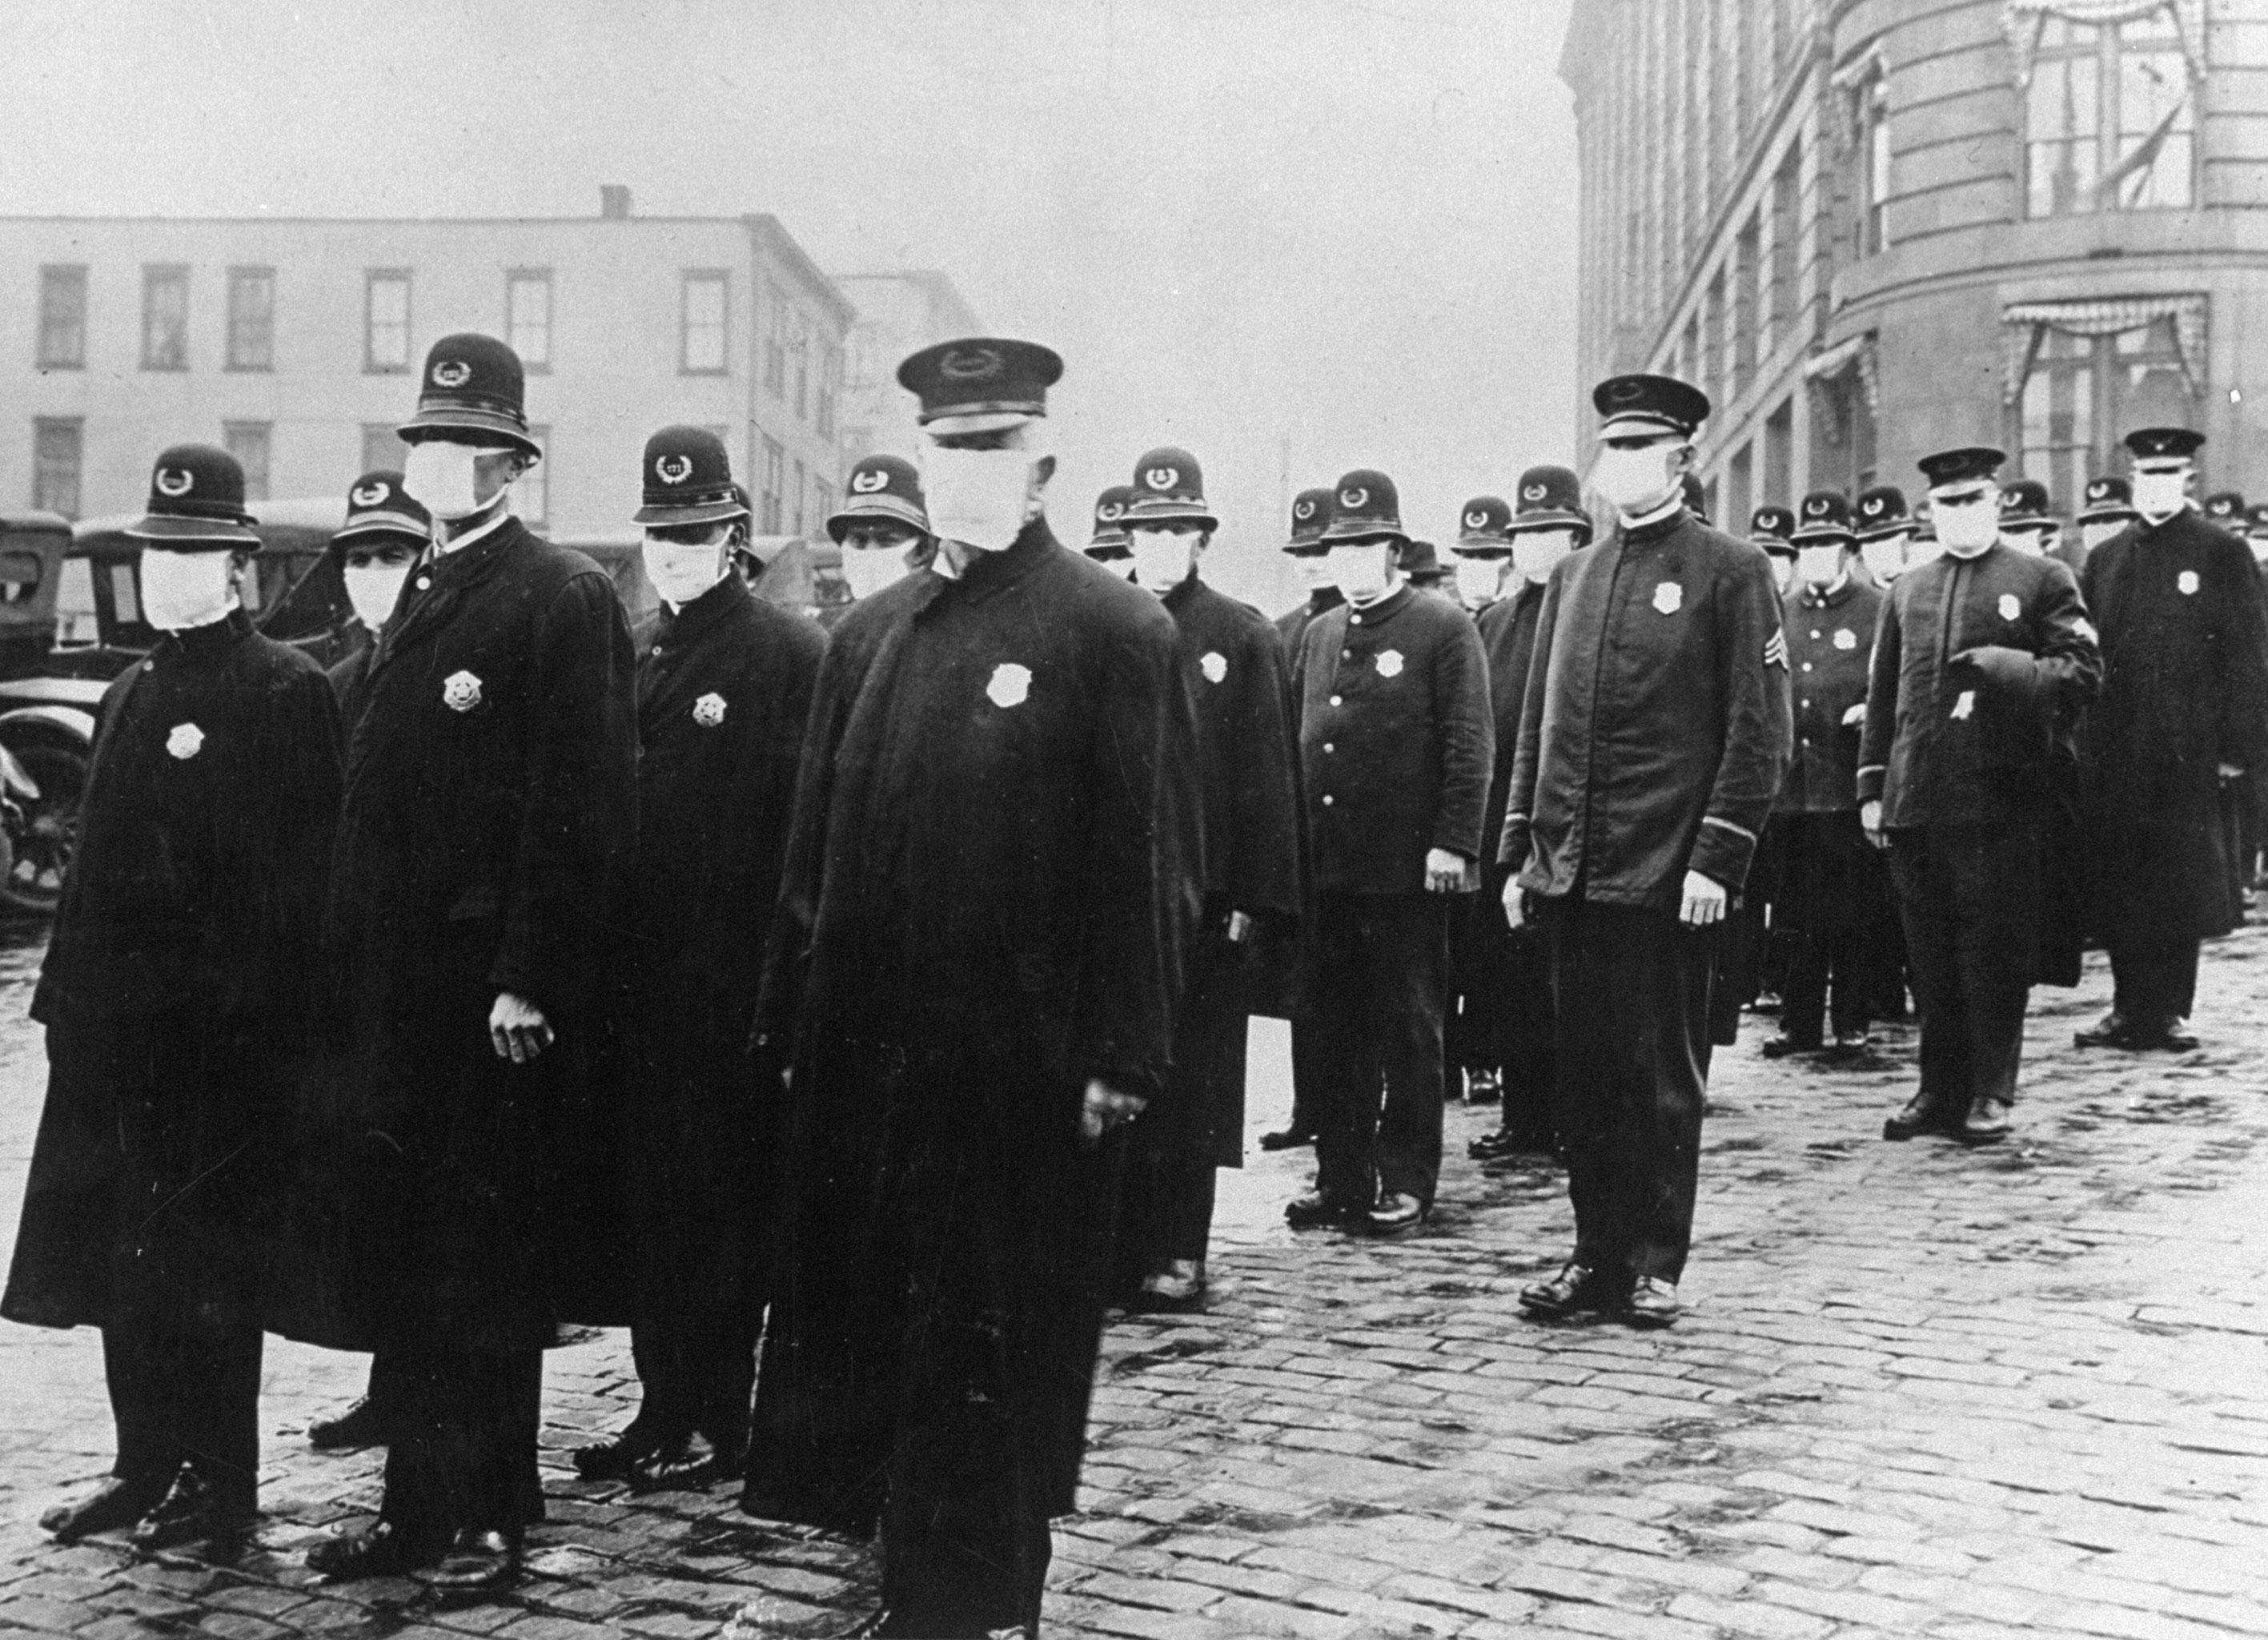 Seattle policemen wear protective face masks during influenza epidemic of 1918.